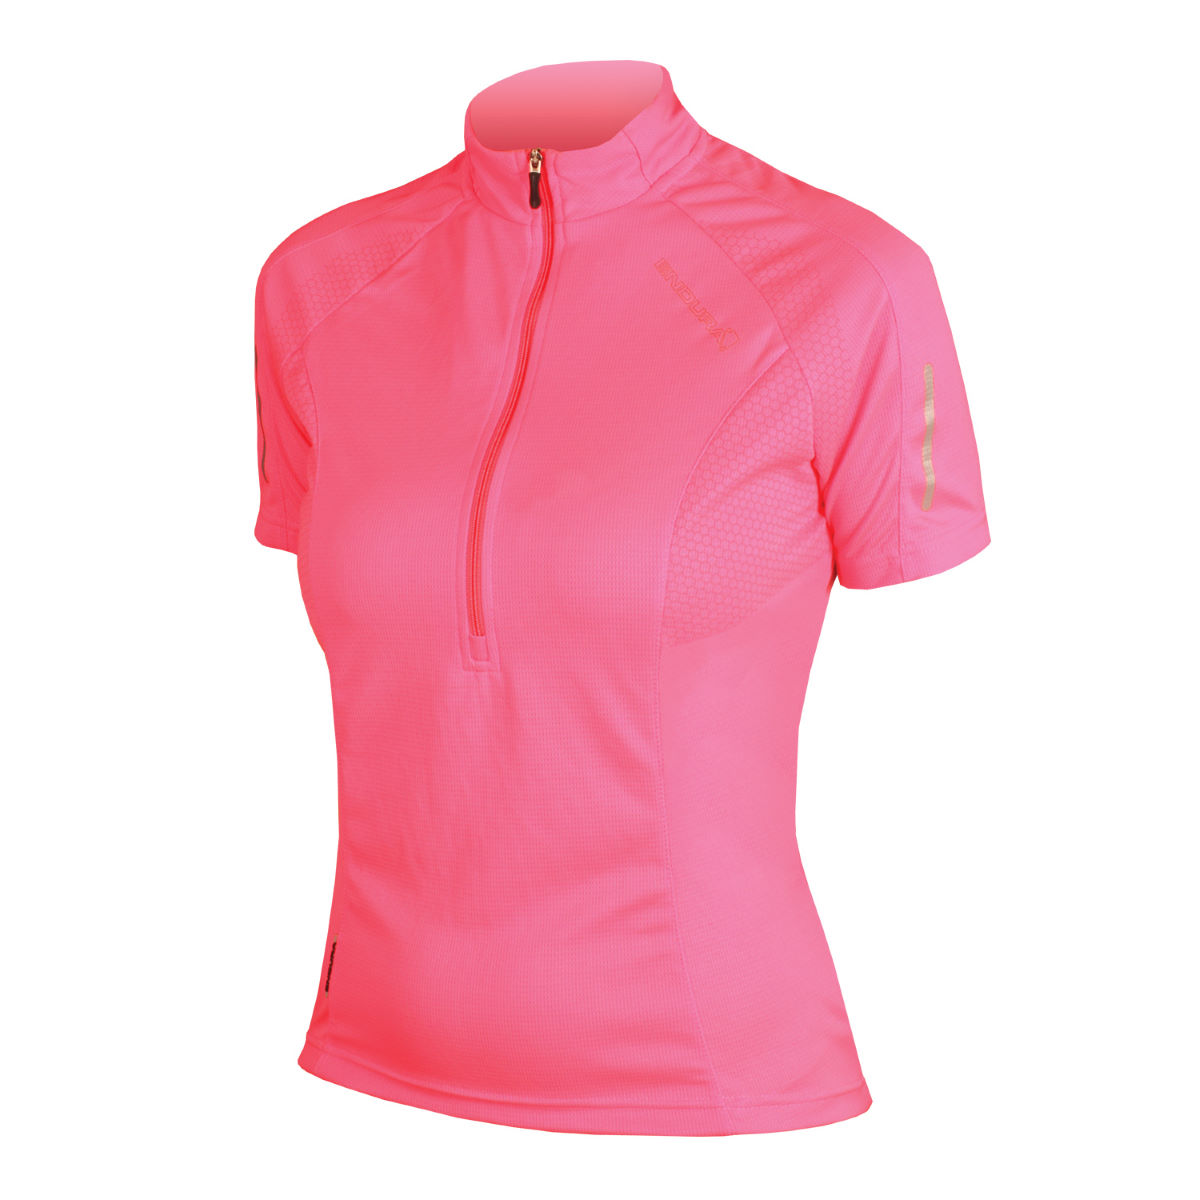 Maillot Femme Endura Xtract - M Rose Maillots